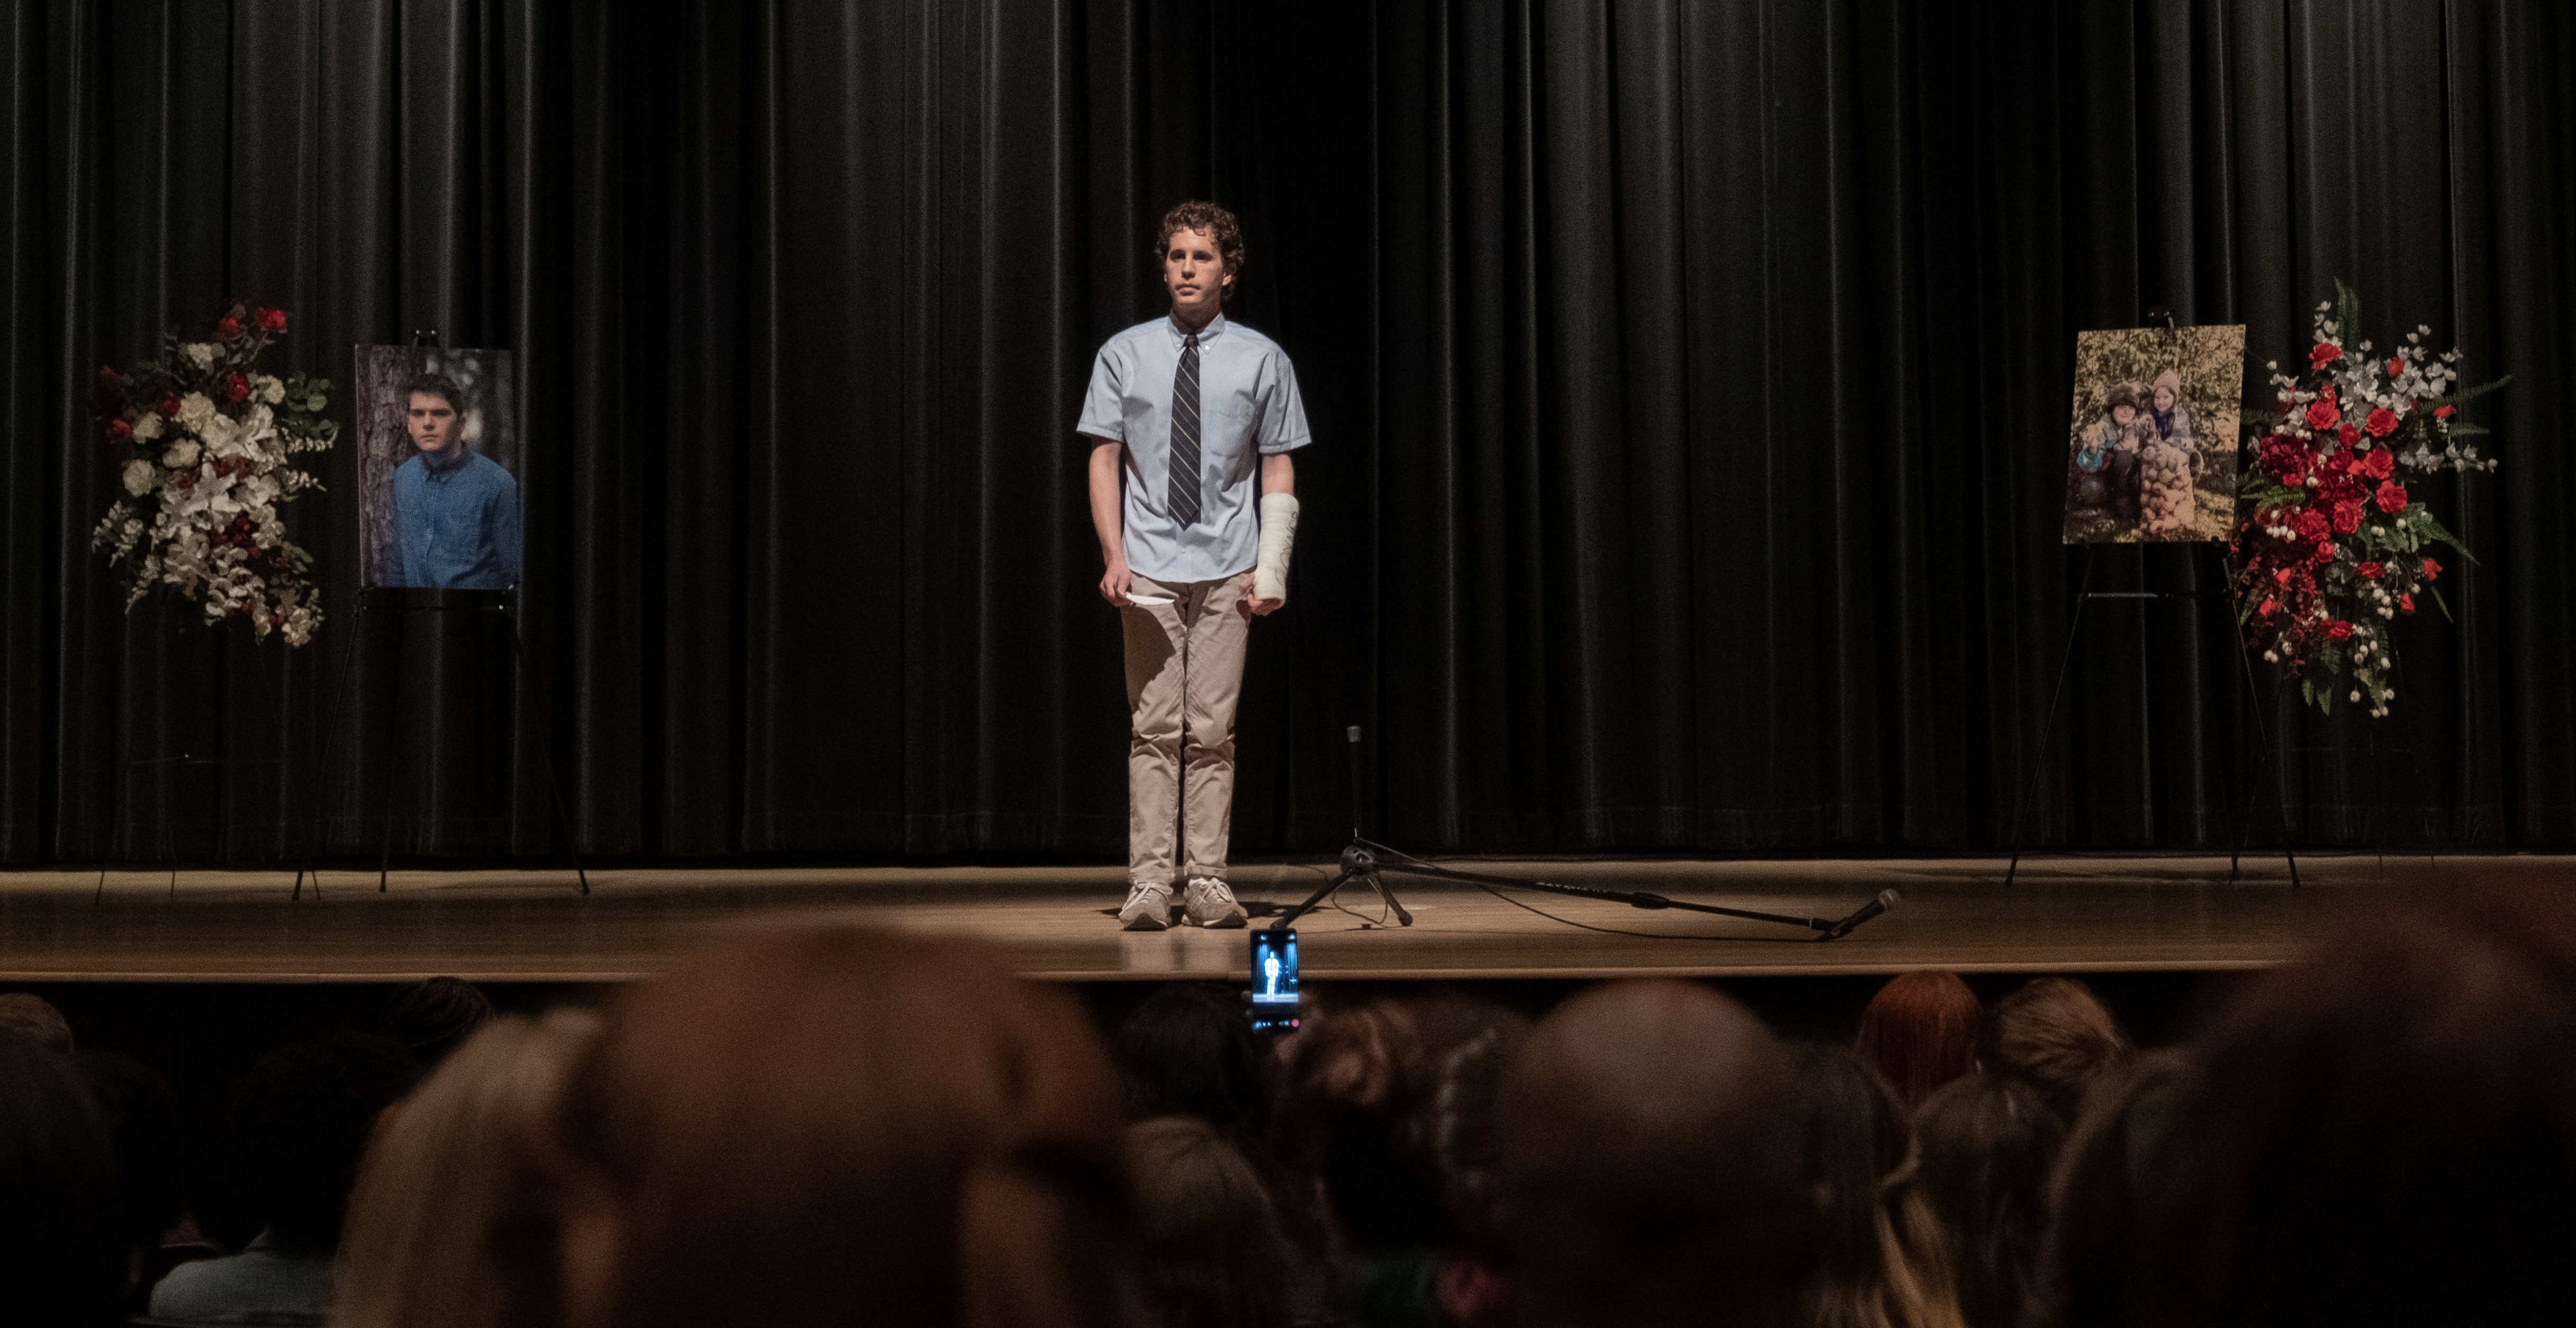 Universal Pictures have released the official trailer for the upcoming film adaptation of Tony award-winning musical Dear Evan Hansen.